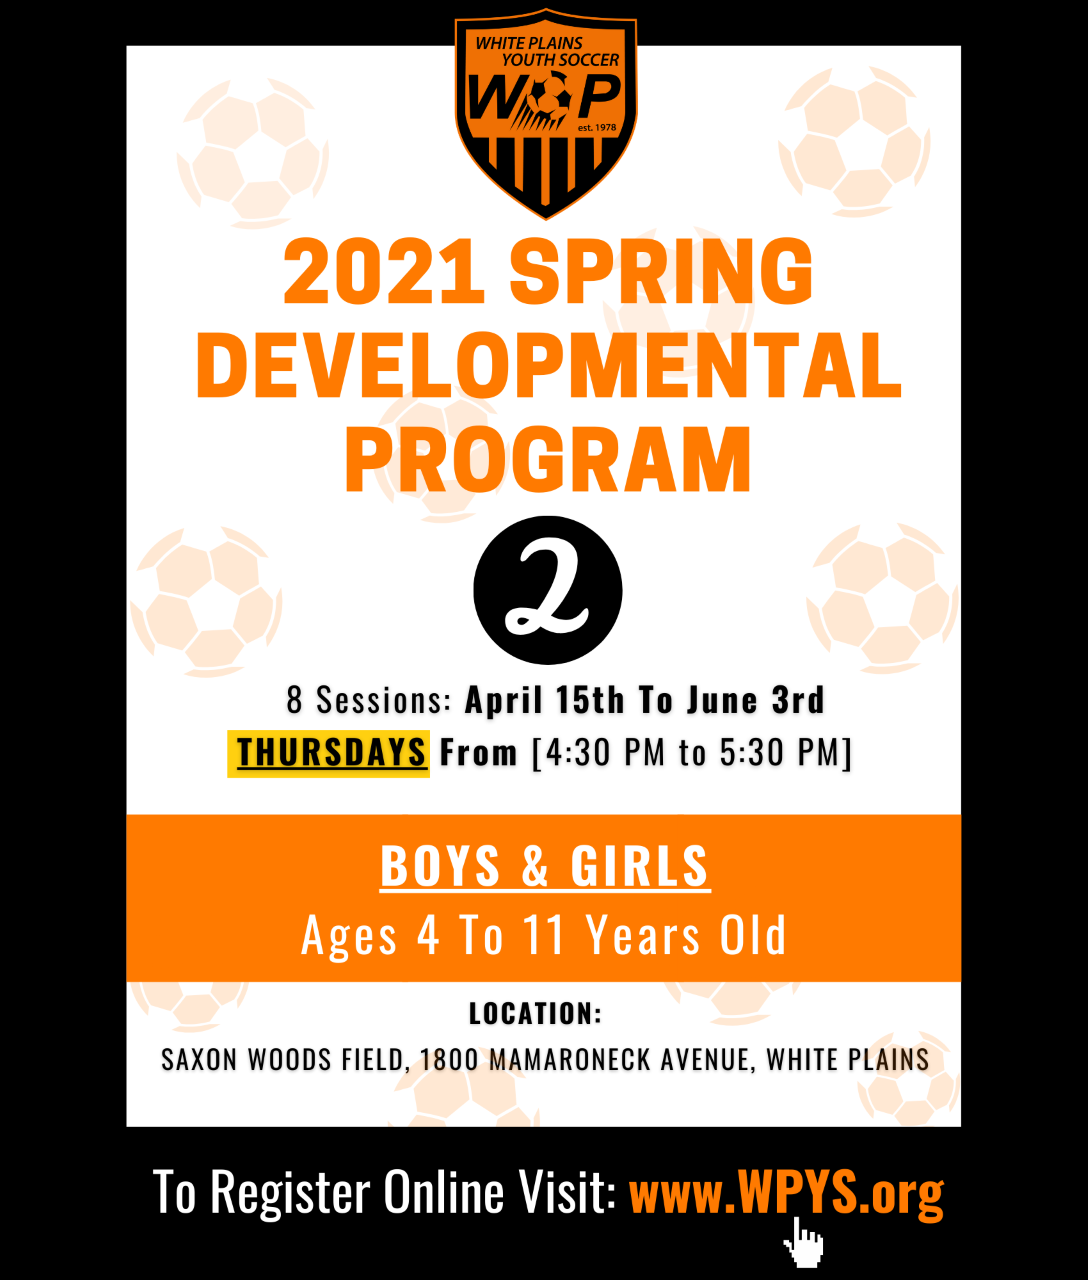 Spring 2021 Developmental Program #2